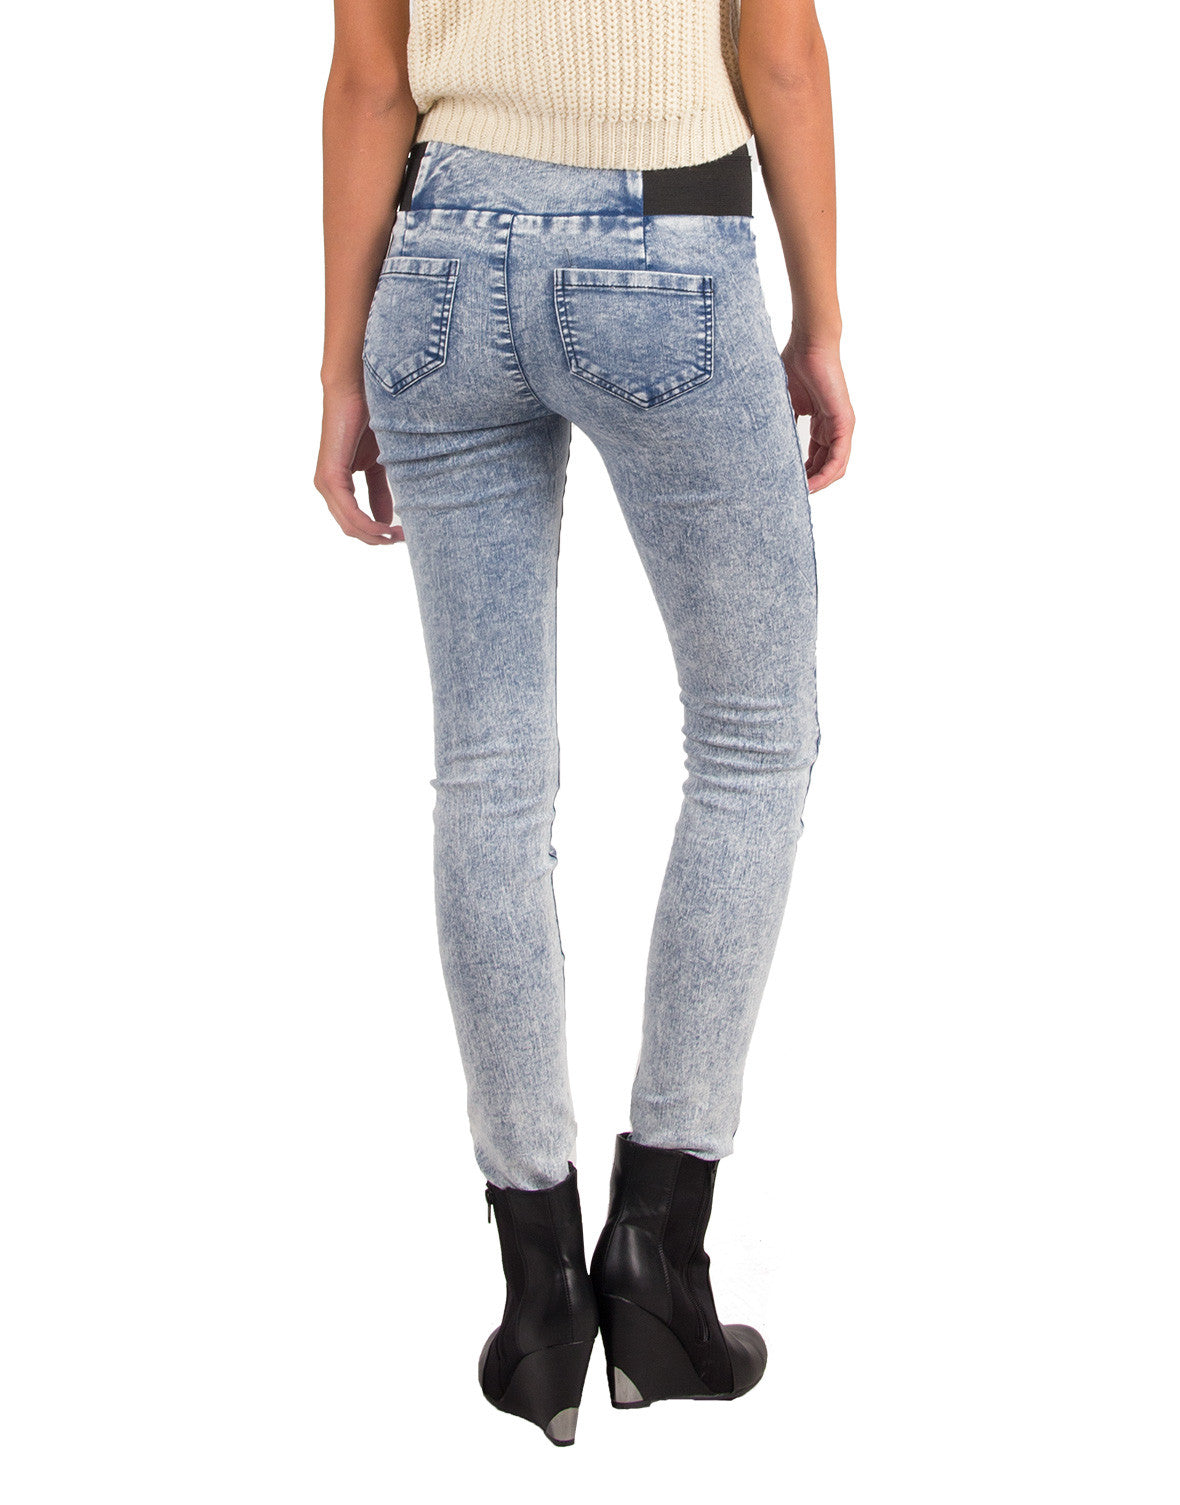 High Waisted Stretchy Denim Jeggings - Poetry 7181G2-Blue